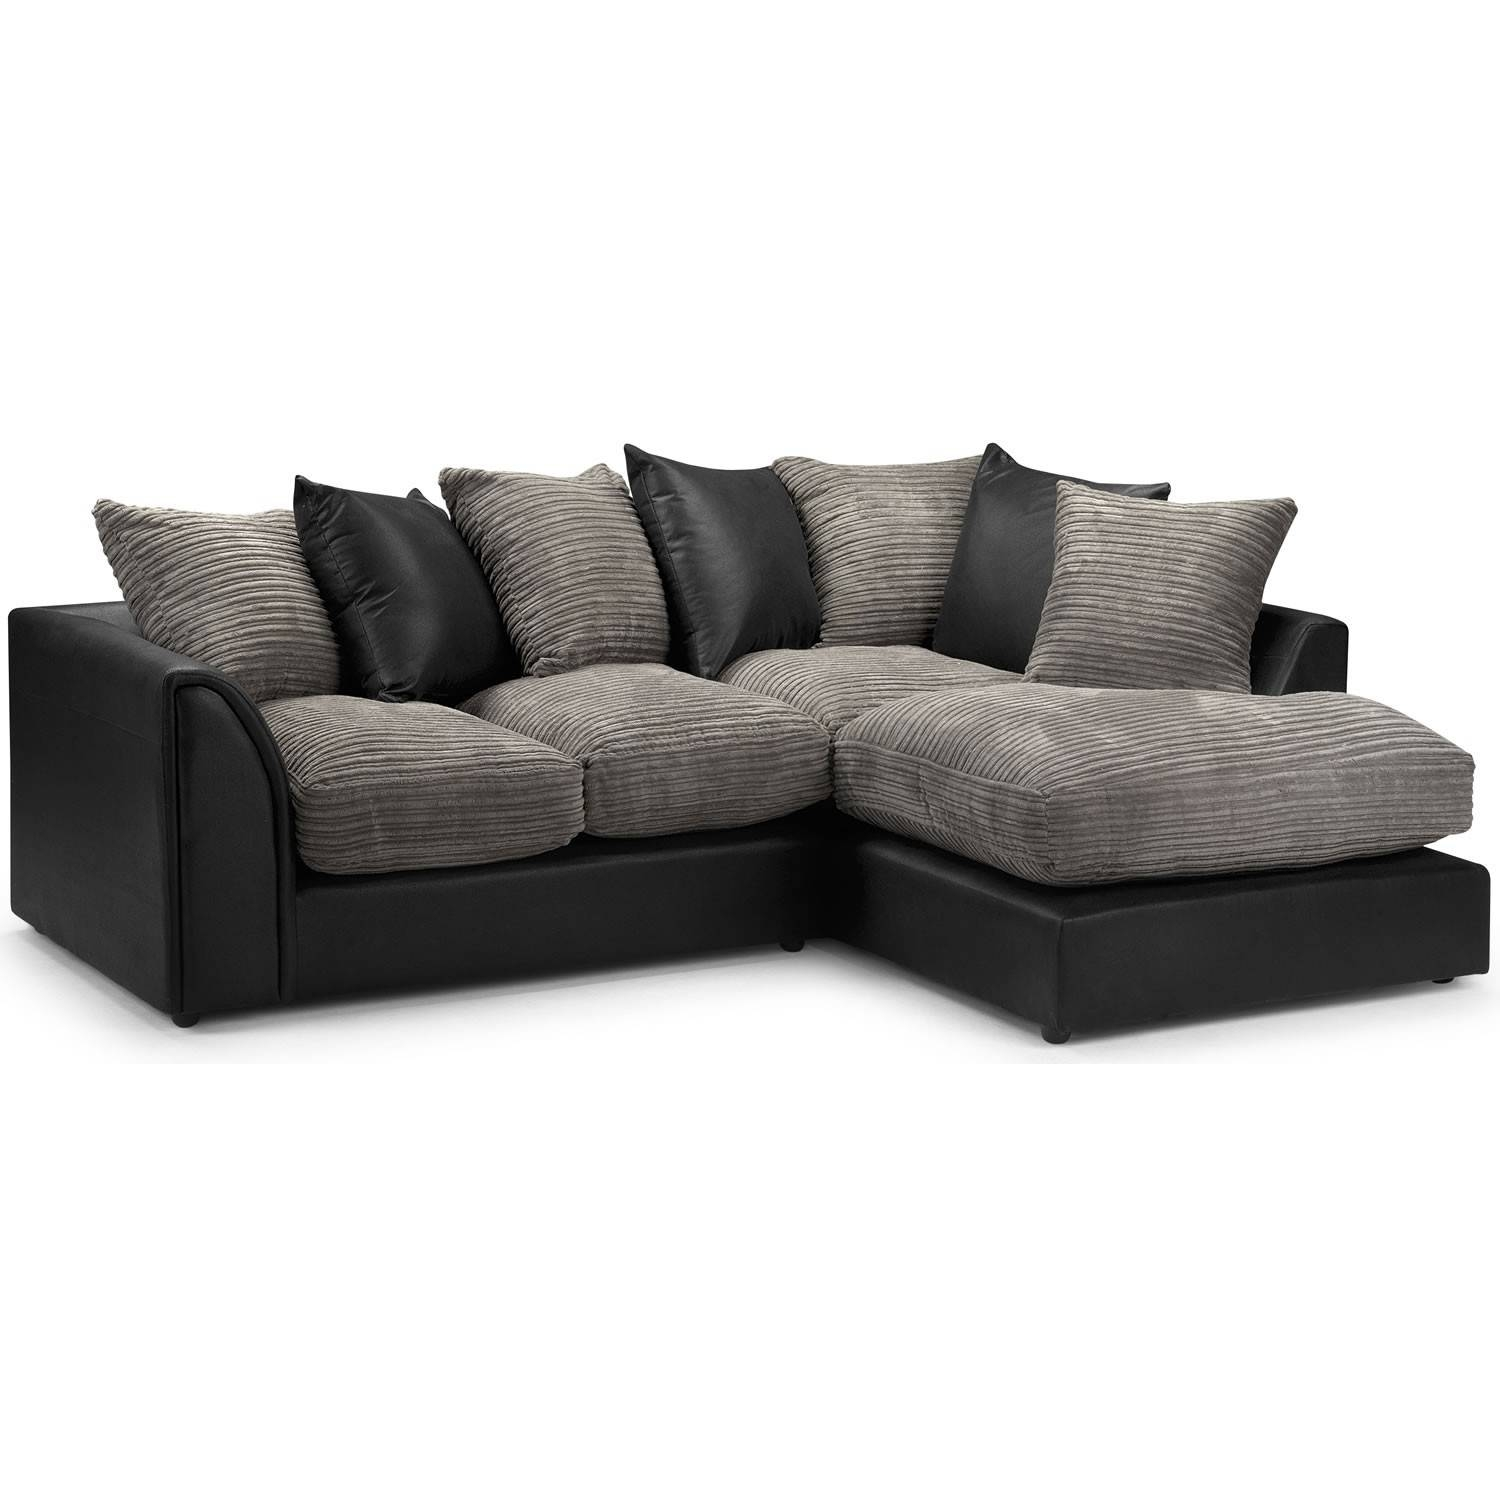 Modern Corner Sofa Ideas Nice Home Design throughout Cheap Corner Sofa (Image 17 of 30)